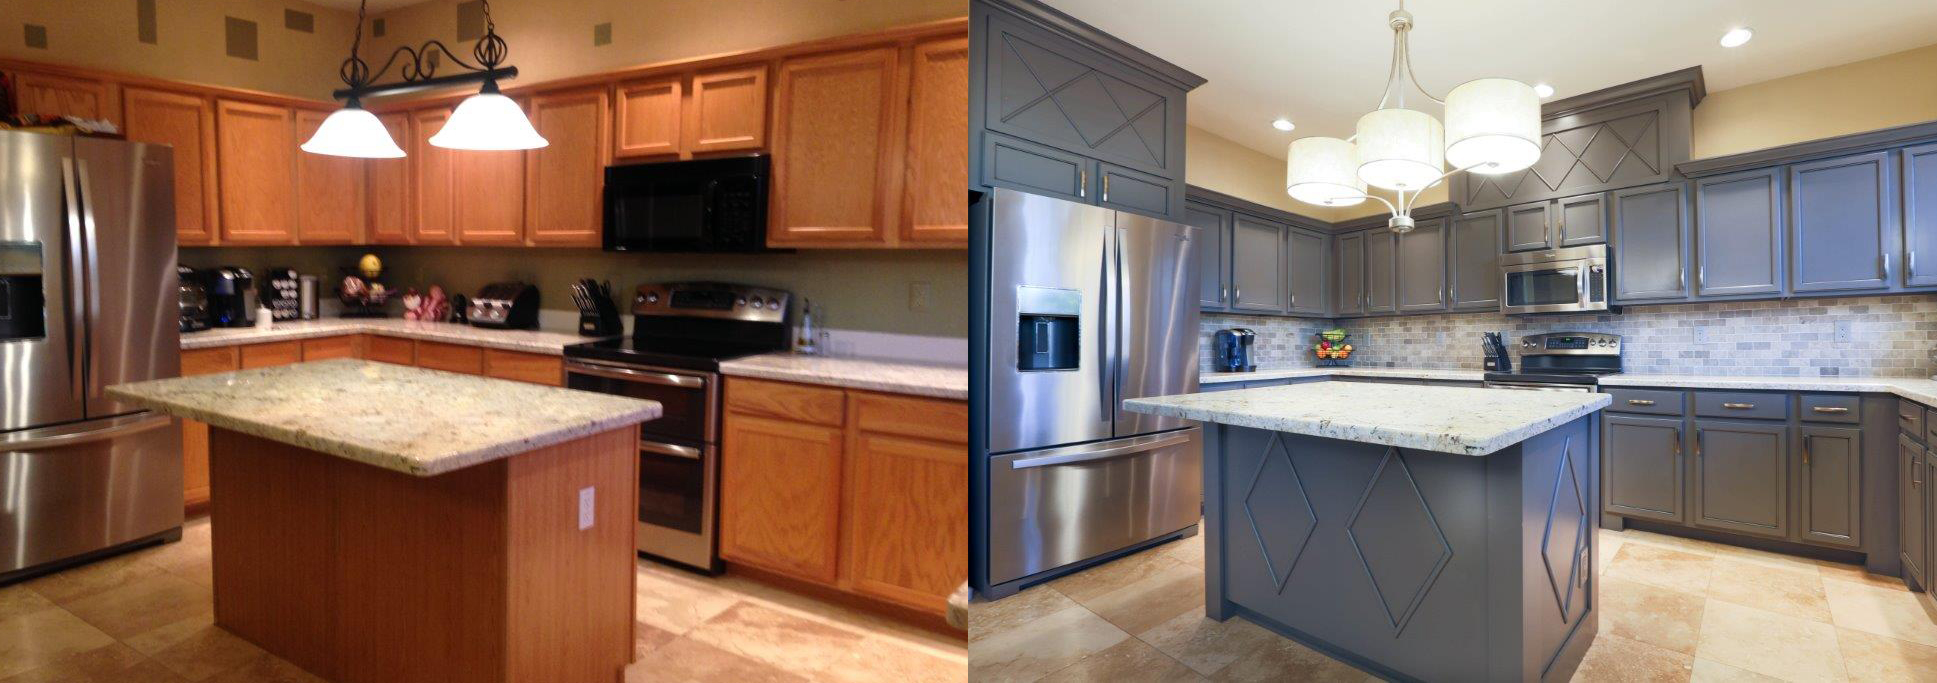 Cabinet Refinishing Phoenix Az Amp Tempe Arizona Kitchens Bathrooms